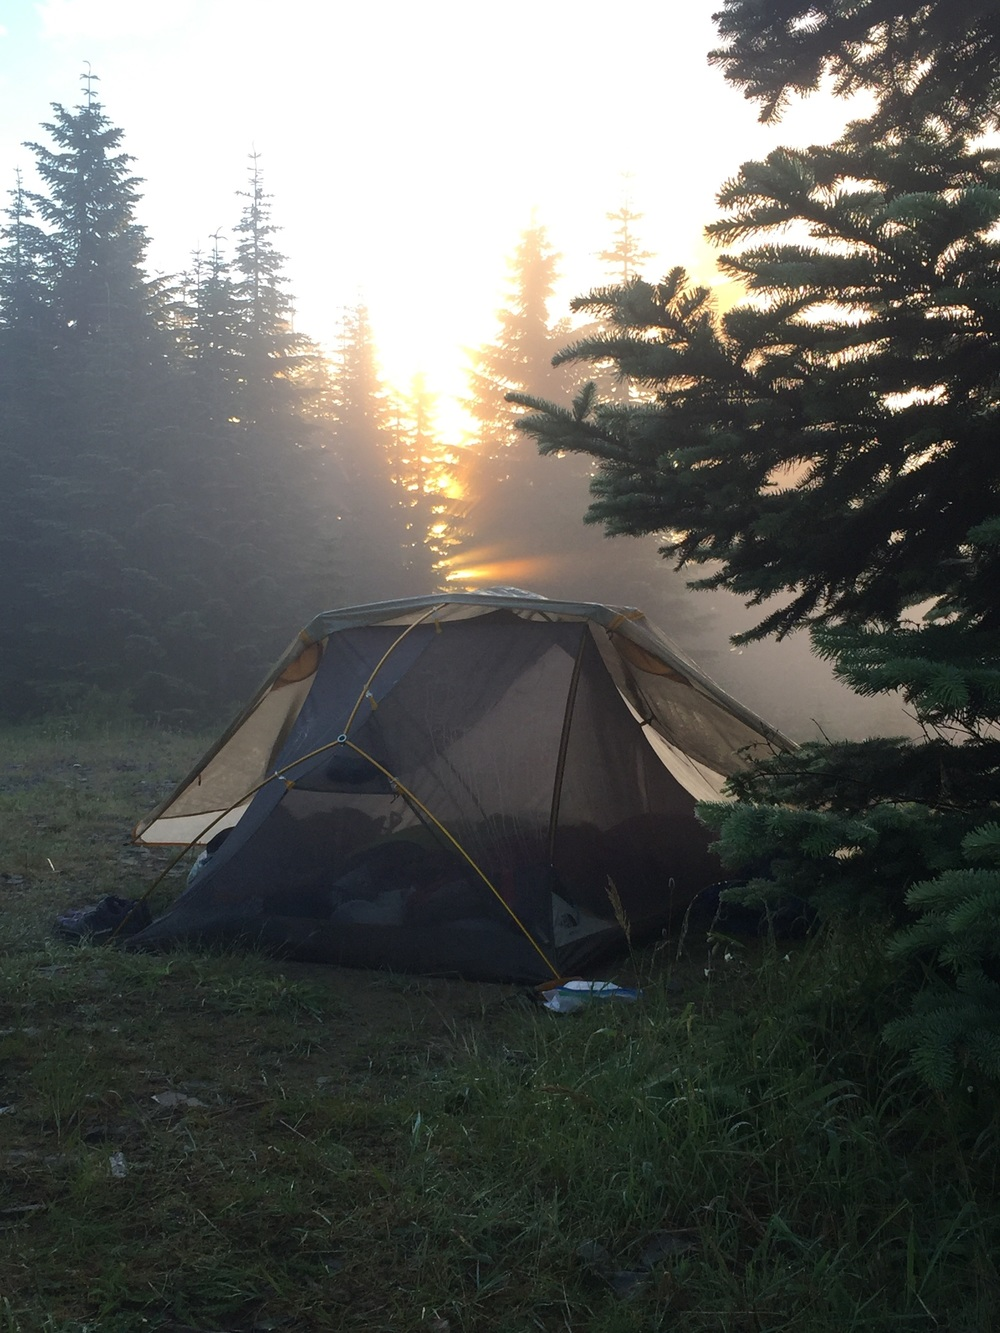 Our tent hangs out in the most beautiful places, and even makes an abandoned road look pretty